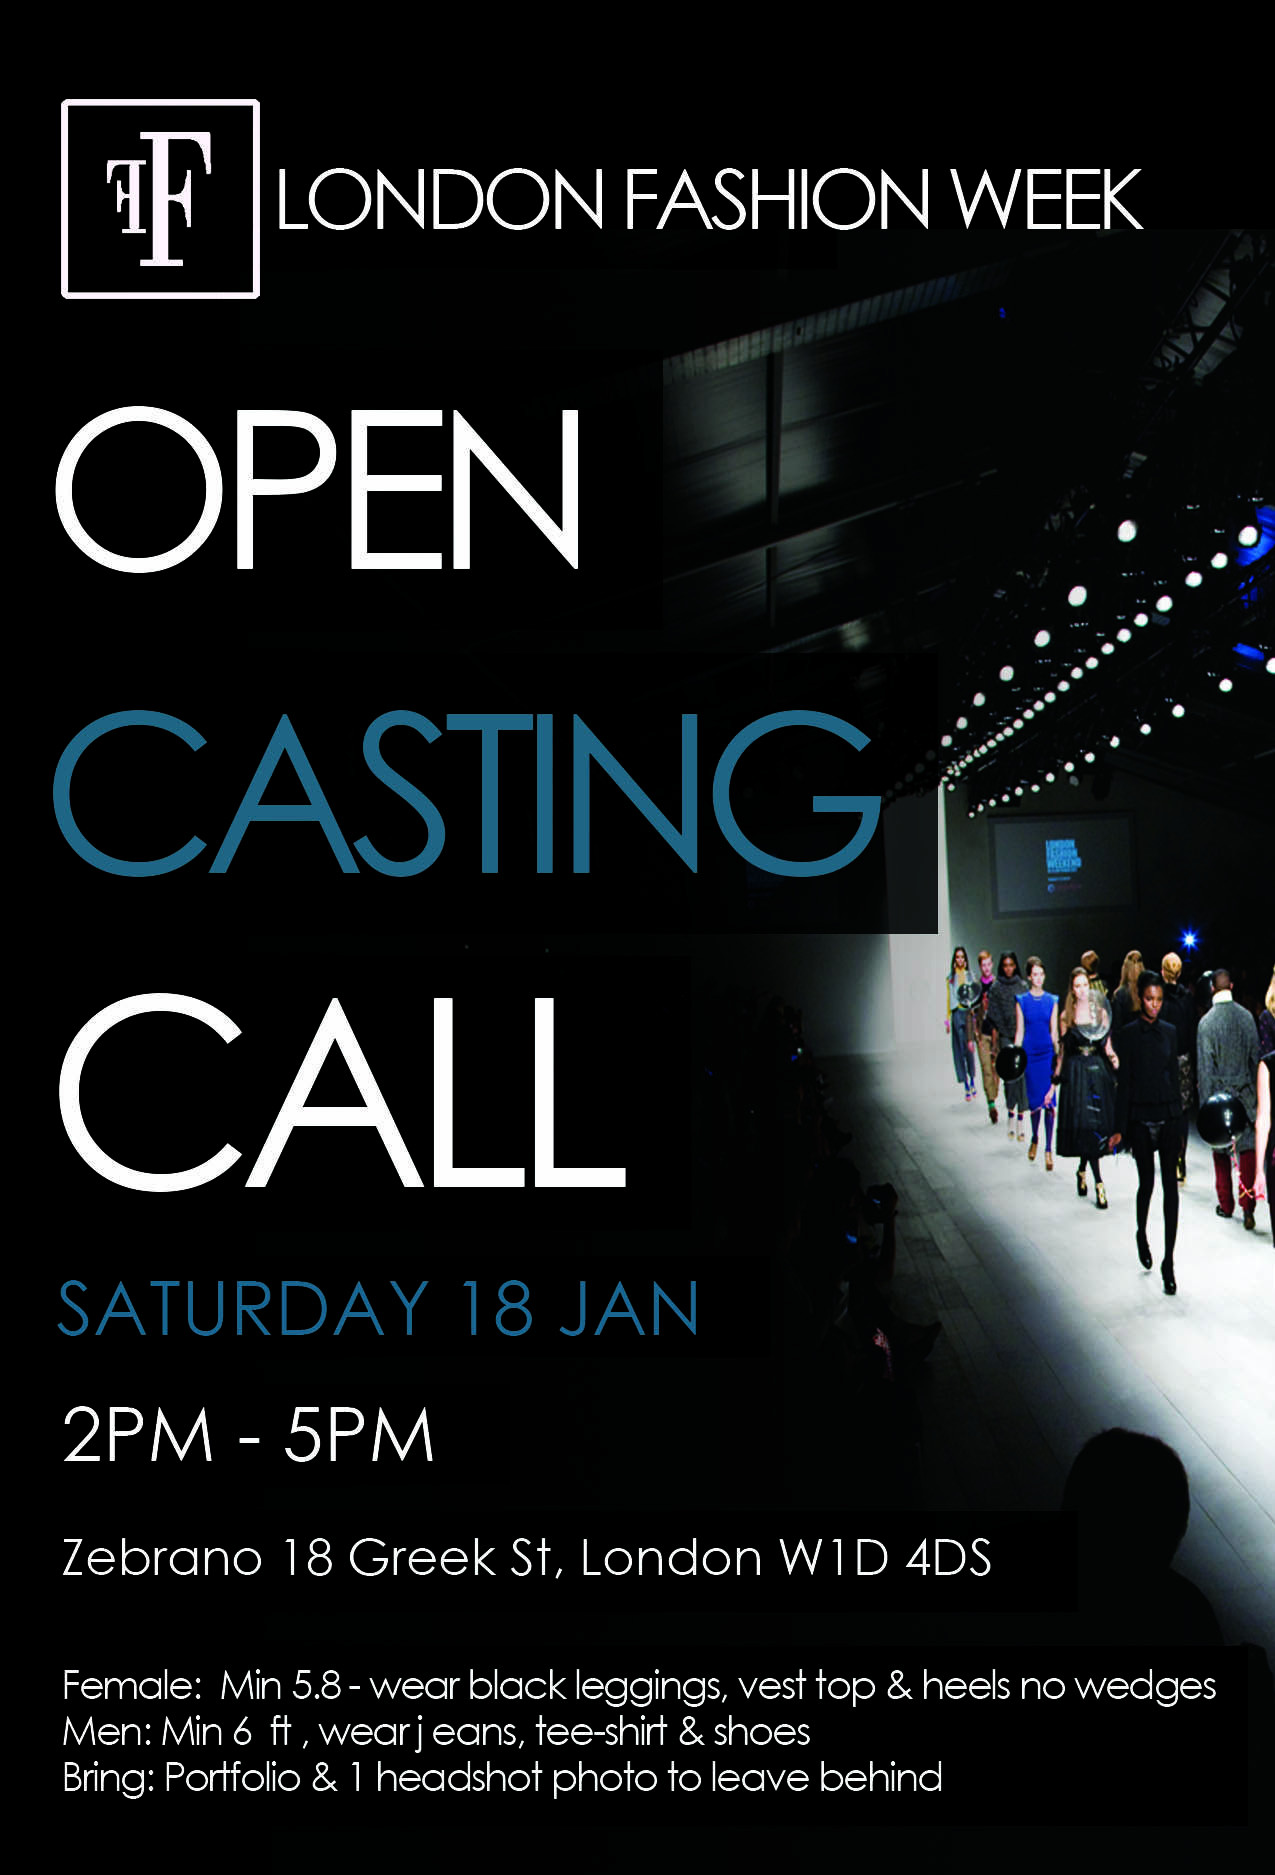 CASTING CALL OPPORTUNITY FOR MALE AND FEMALE MODELS TO WALK